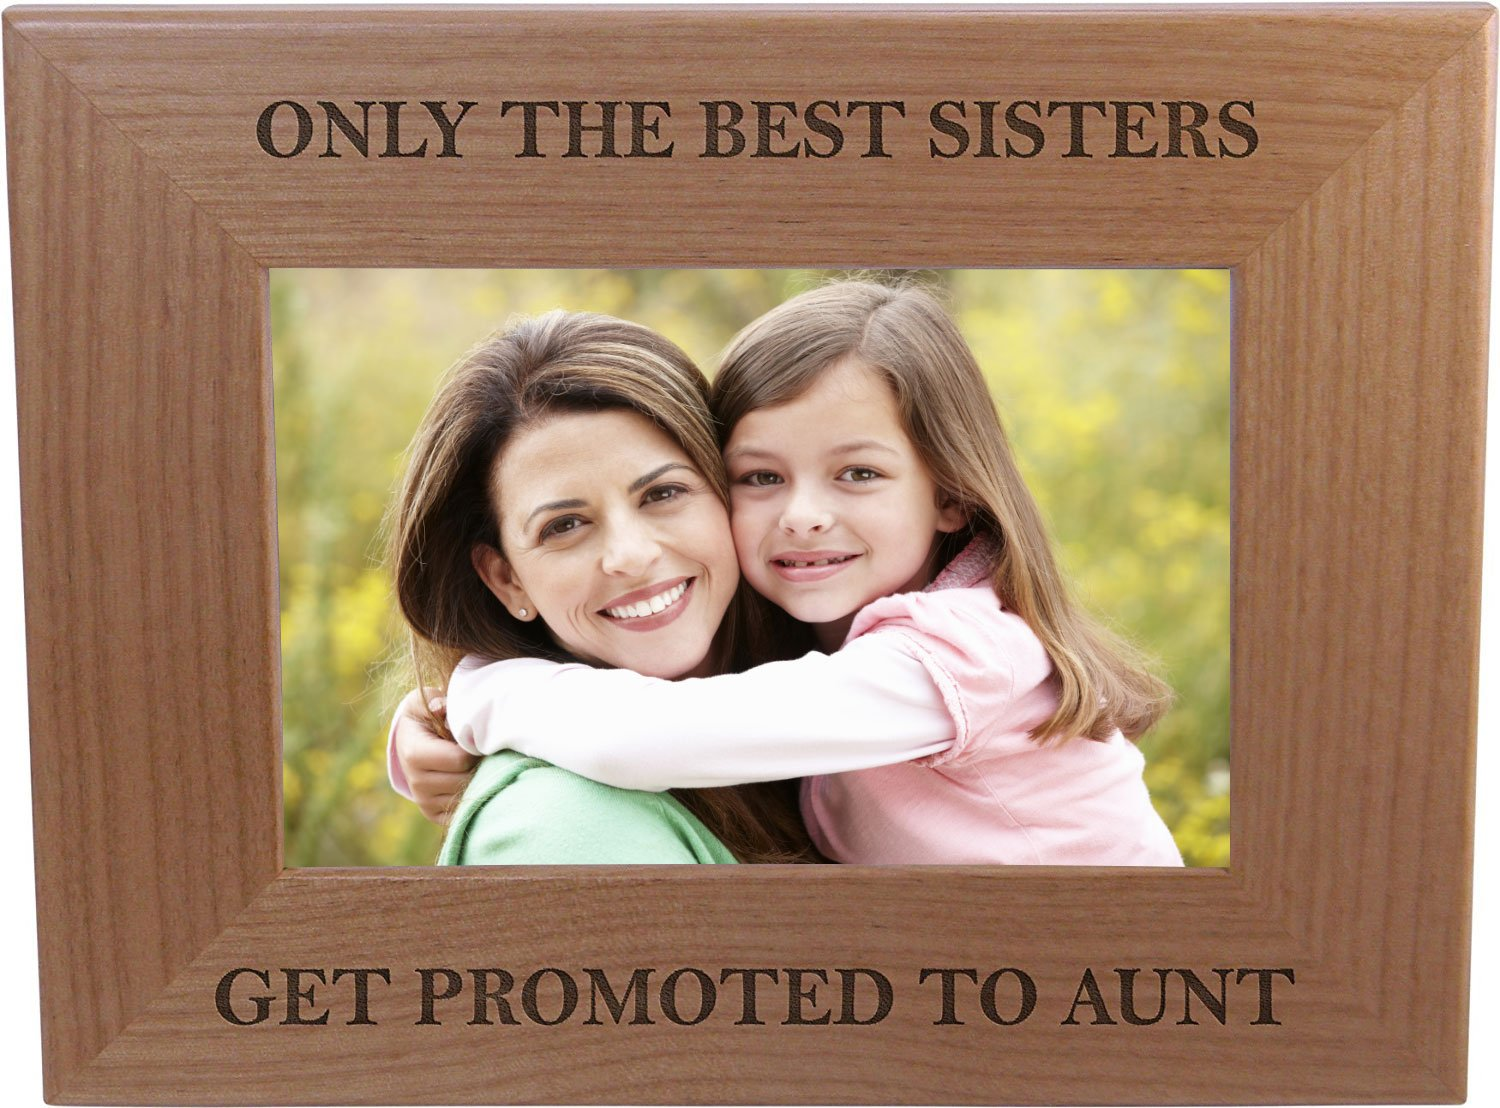 Amazon.com - Only The Best Sisters Get Promoted to Aunt - 4x6 Inch ...